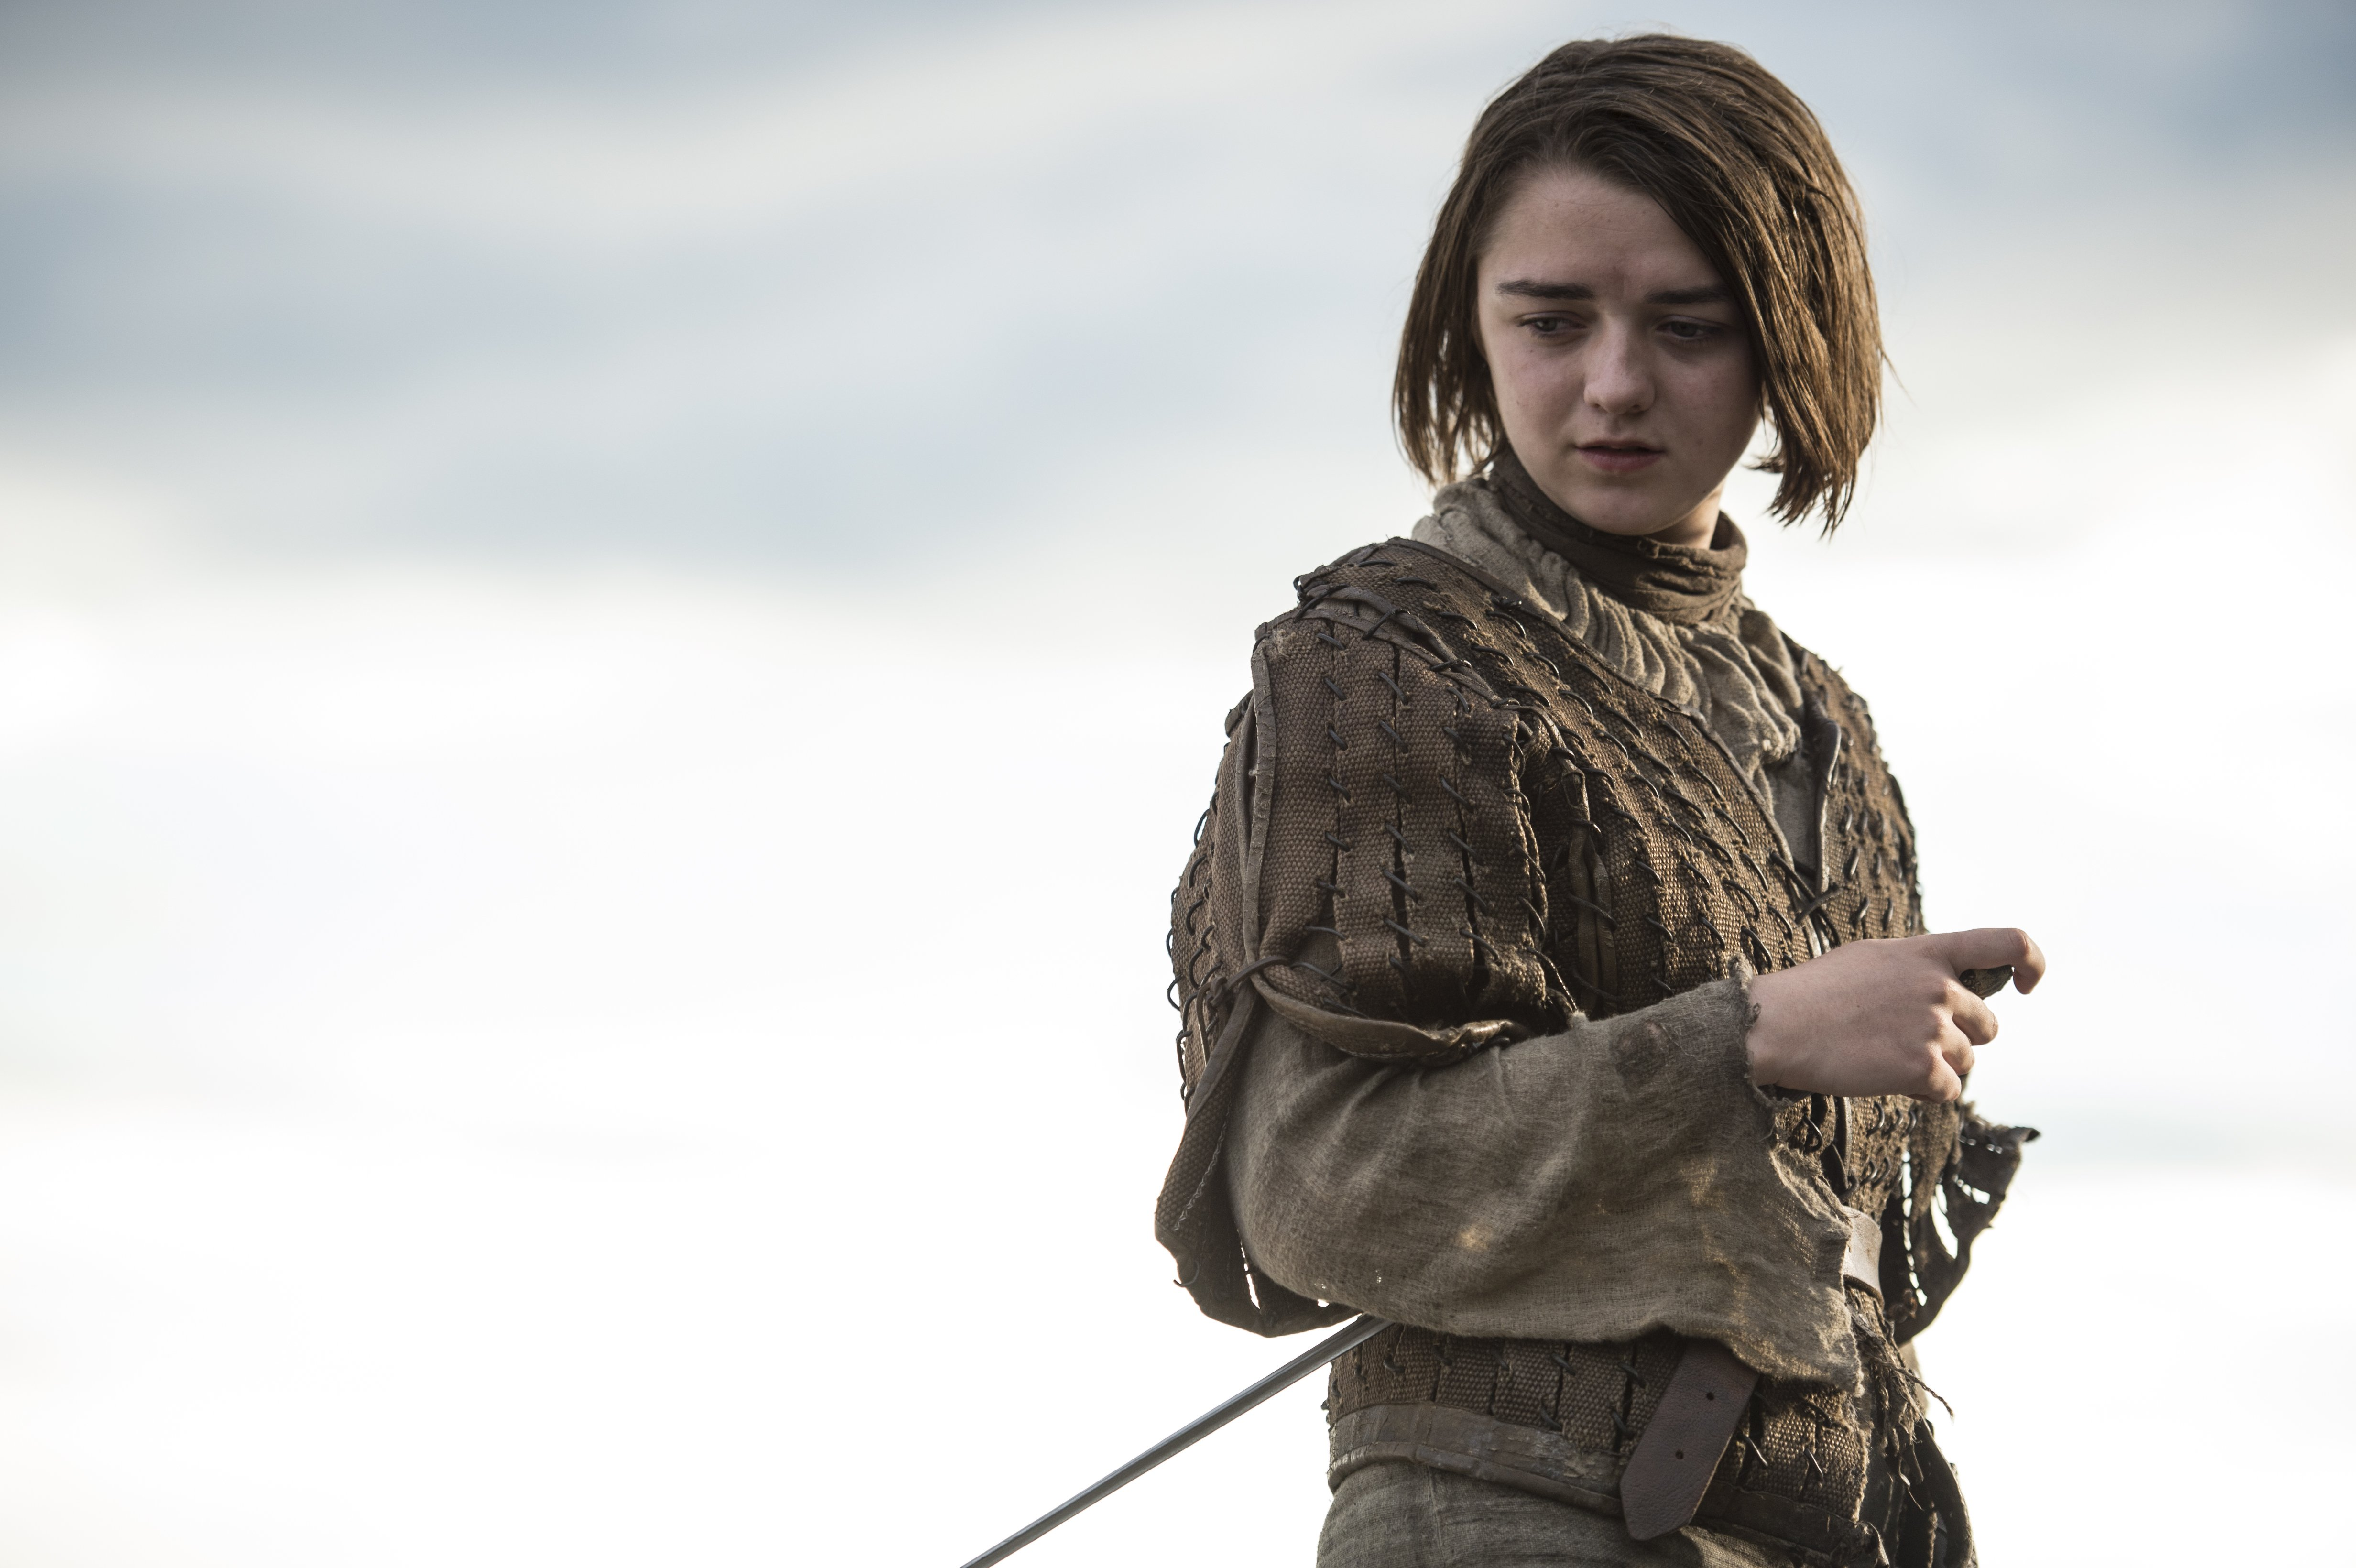 arya stark images arya stark hd wallpaper and background photos